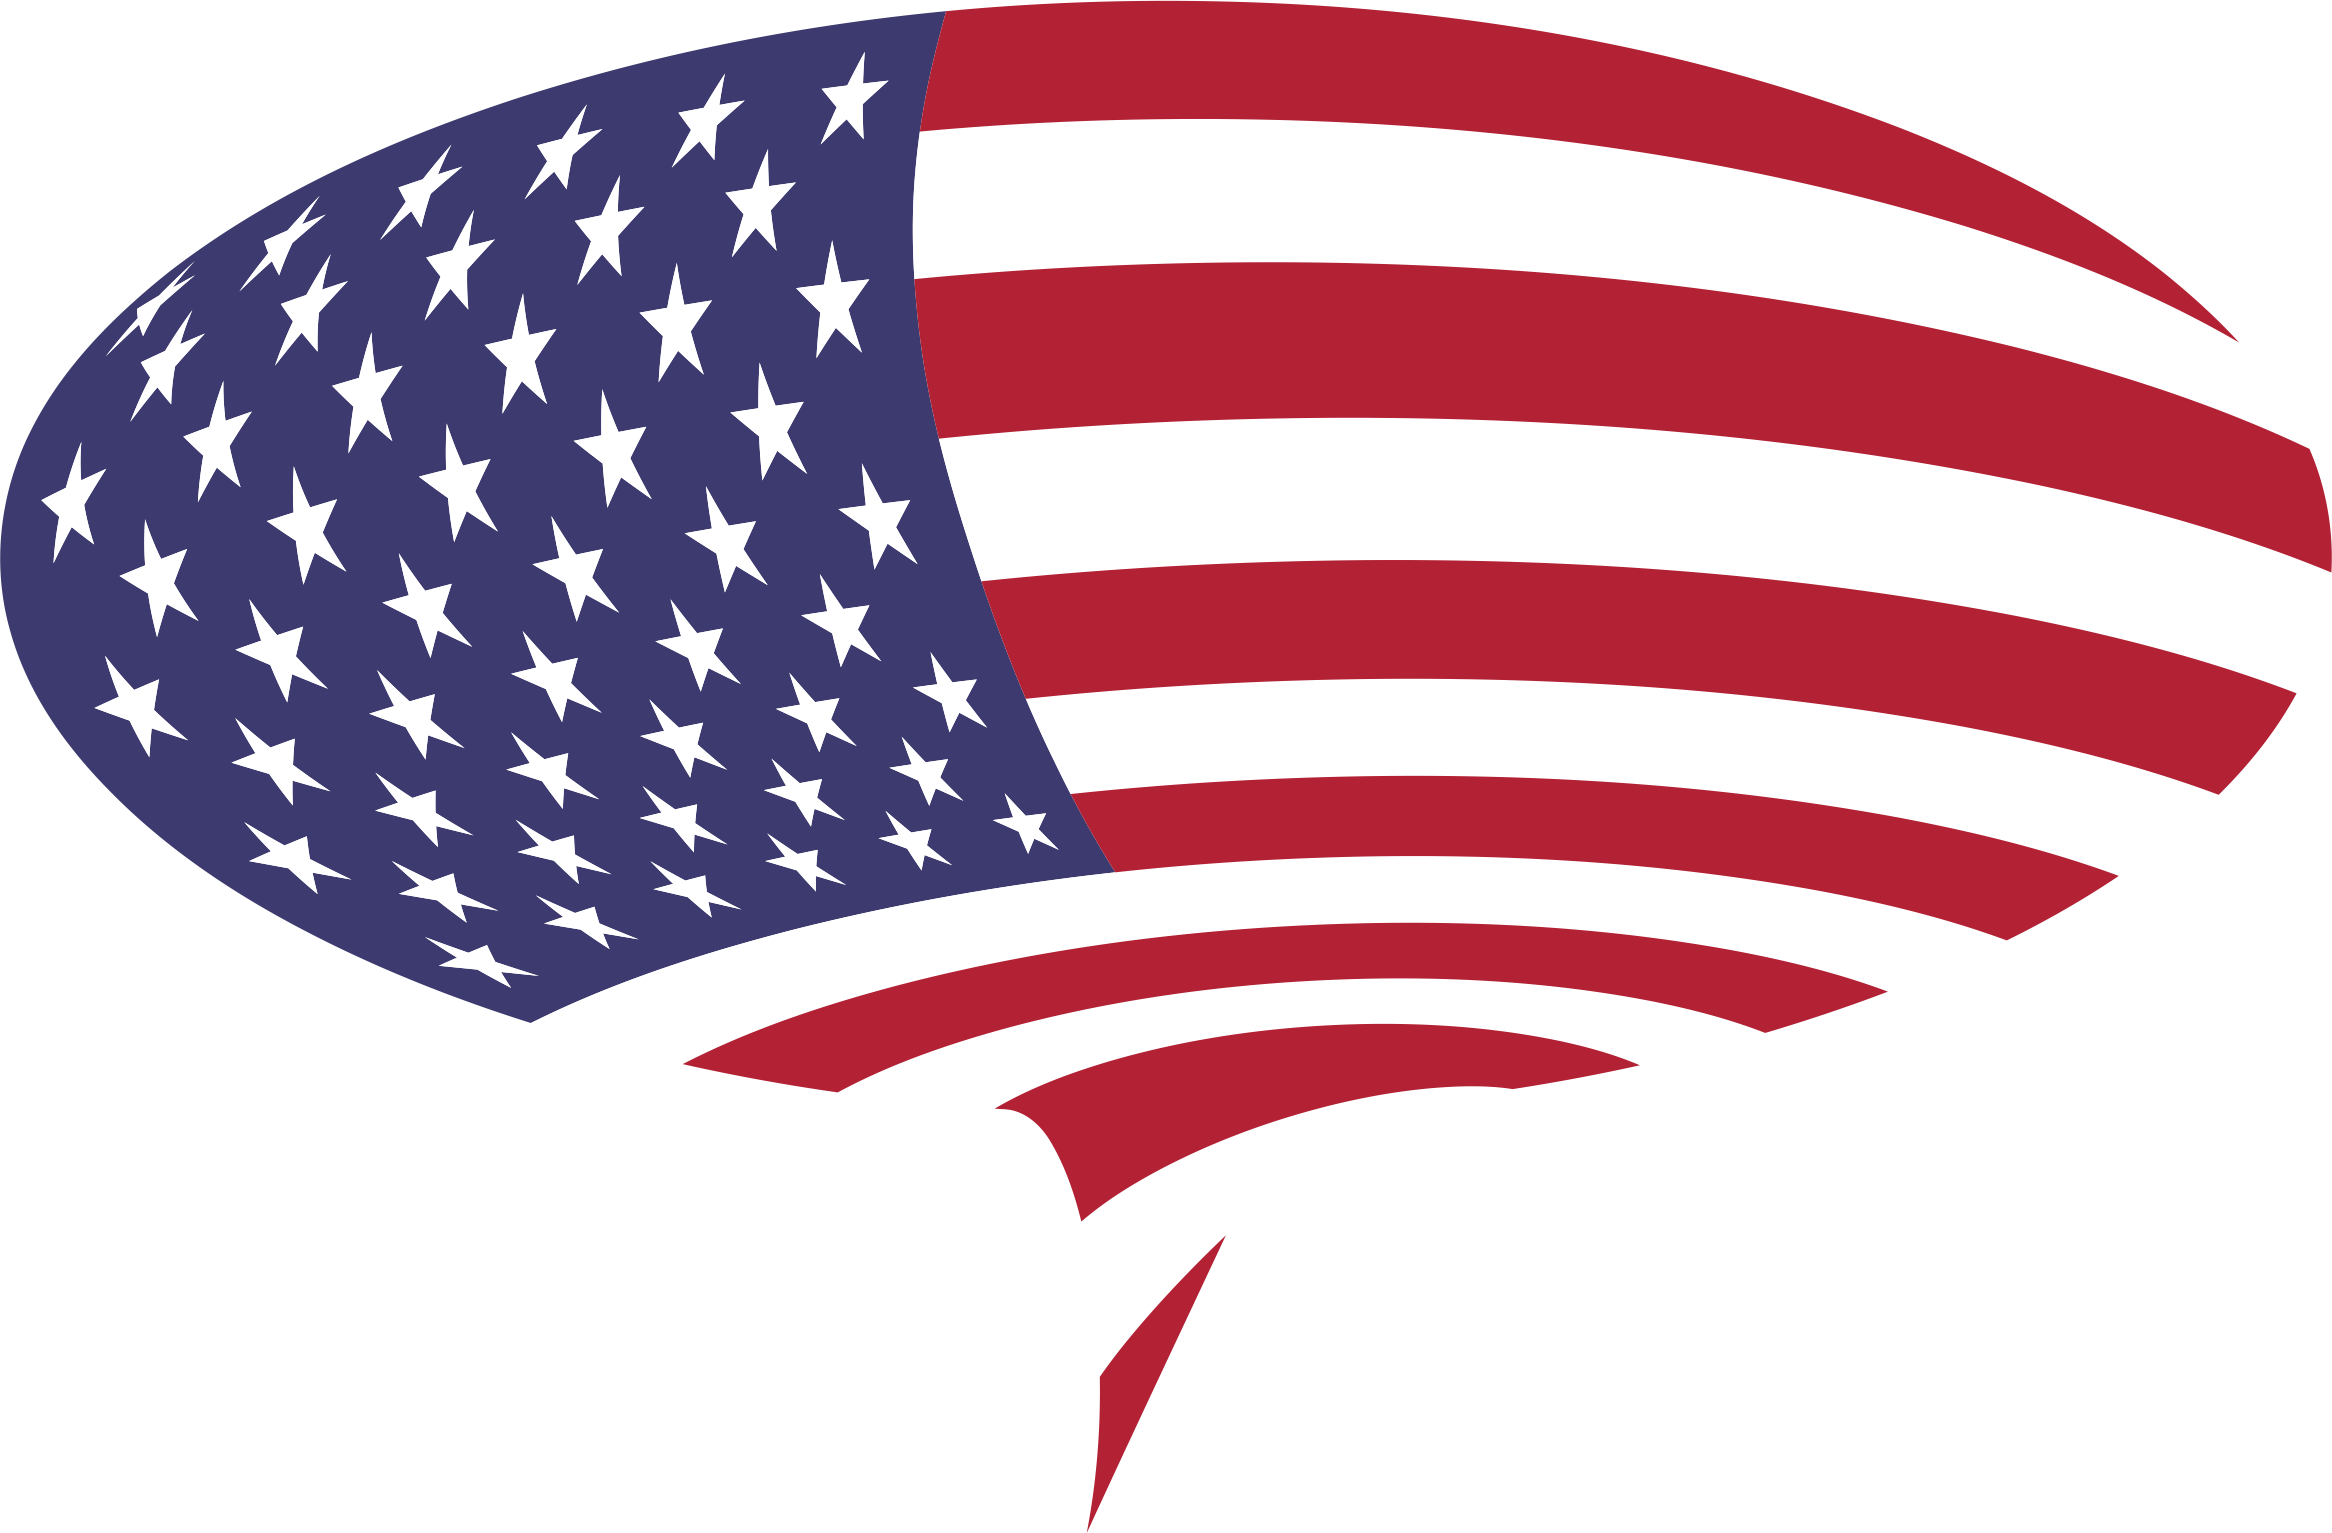 American Flag Speech Bubble by GDJ